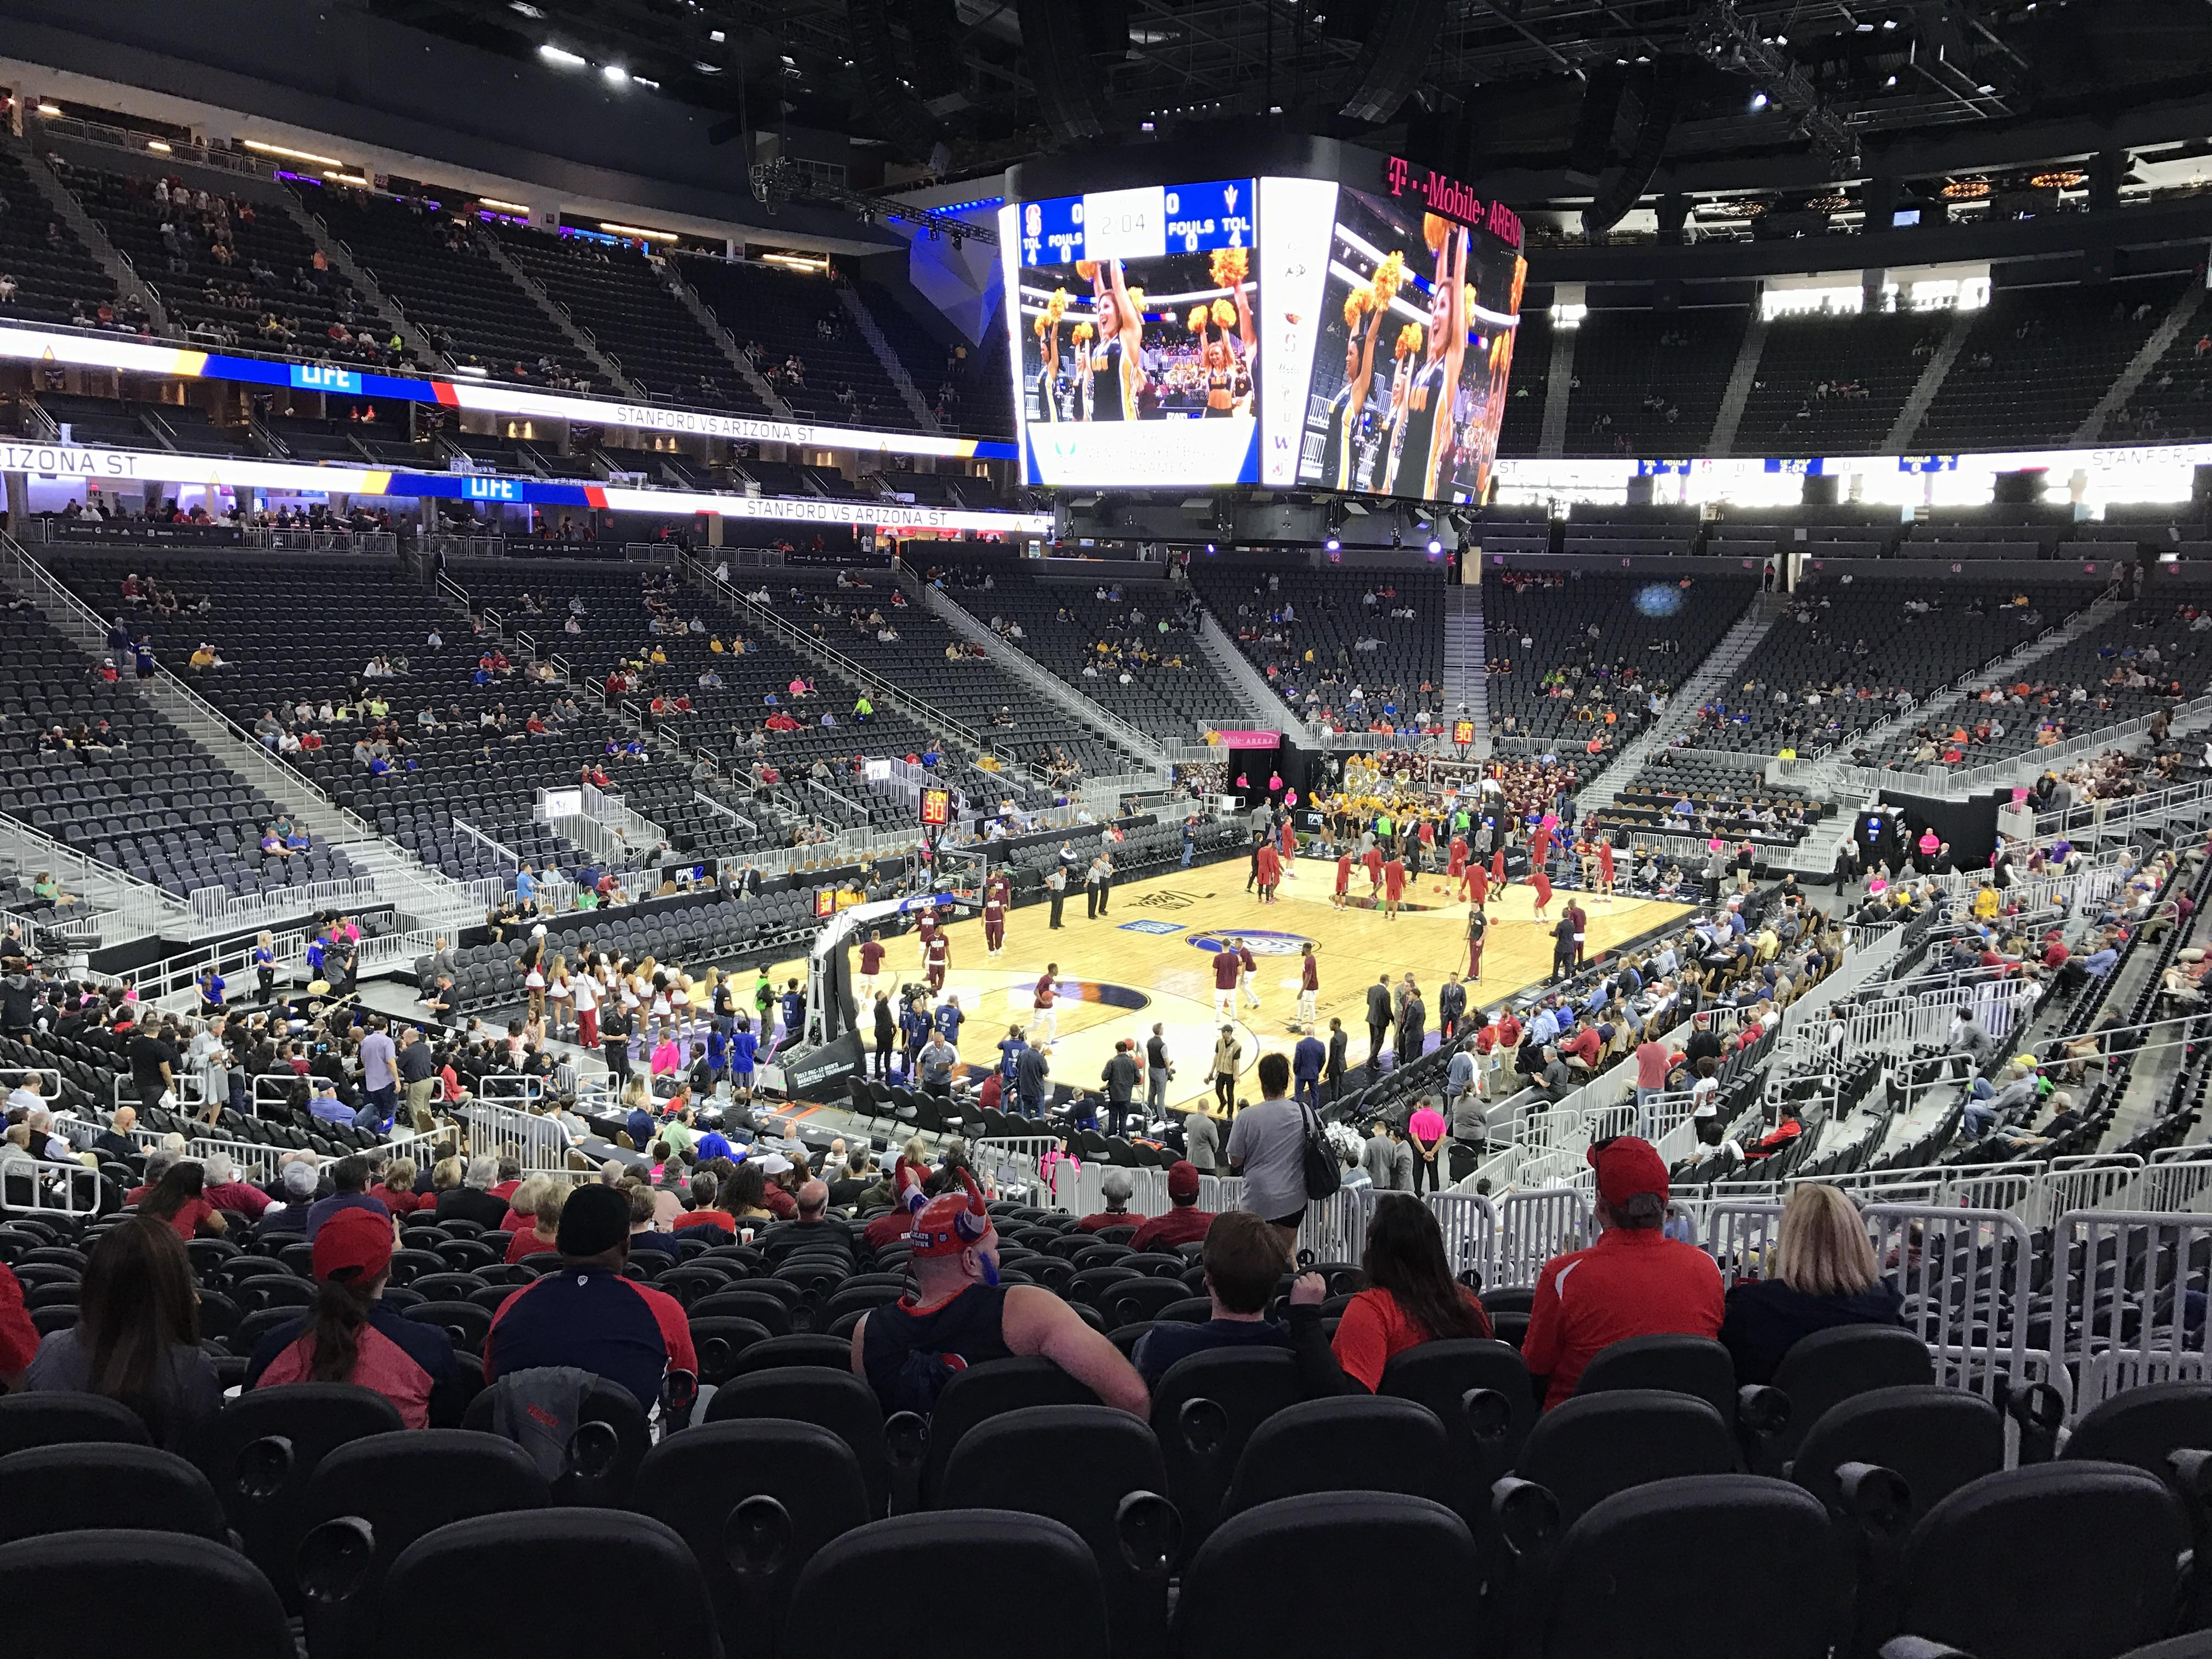 T-Mobile Arena Section 2 Row W Seat 19